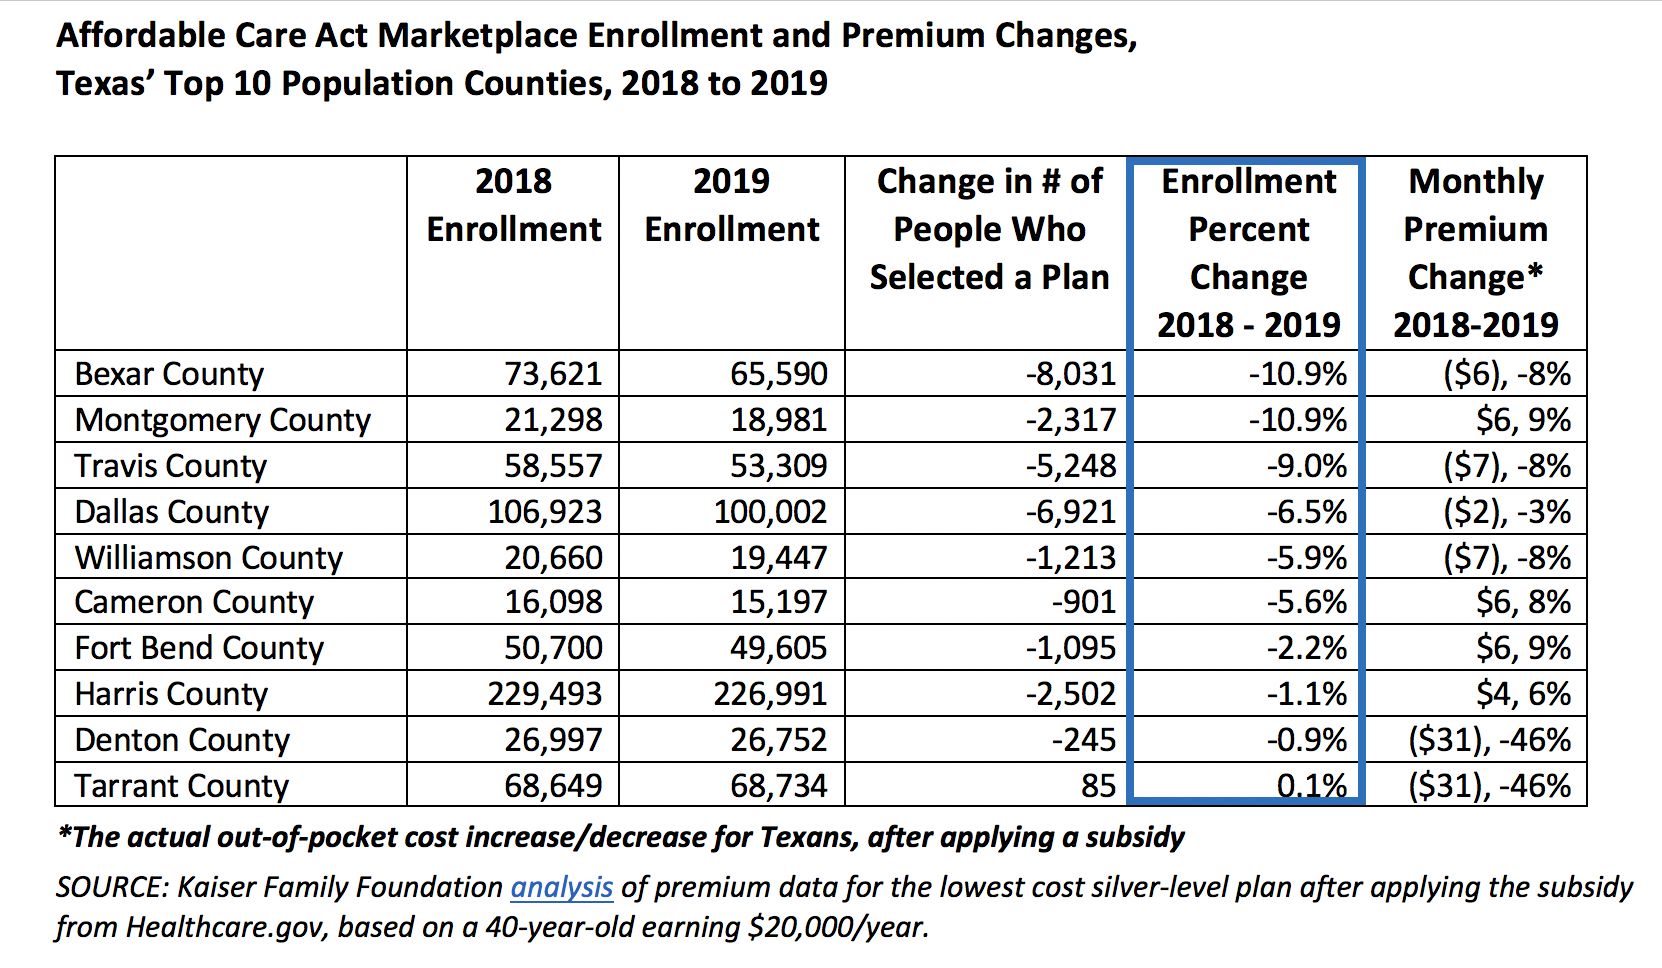 SOURCE: Kaiser Family Foundation    analysis    of premium data for the lowest cost silver-level plan after applying the subsidy from Healthcare.gov, based on a 40-year-old earning $20,000/year.